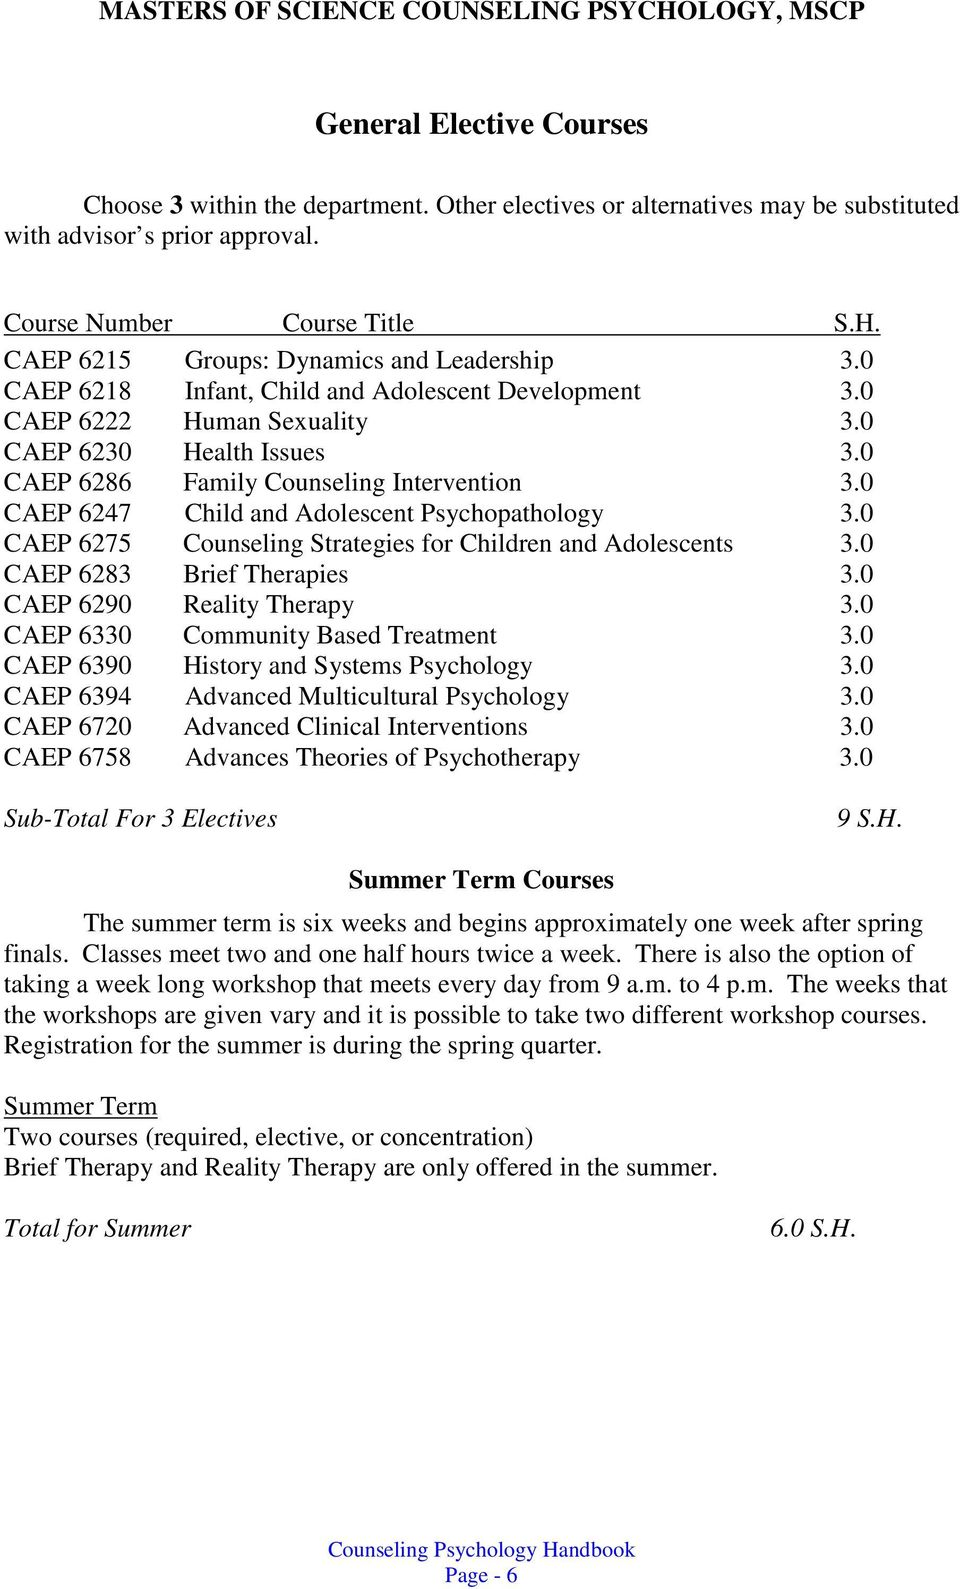 0 CAEP 6286 Family Counseling Intervention 3.0 CAEP 6247 Child and Adolescent Psychopathology 3.0 CAEP 6275 Counseling Strategies for Children and Adolescents 3.0 CAEP 6283 Brief Therapies 3.